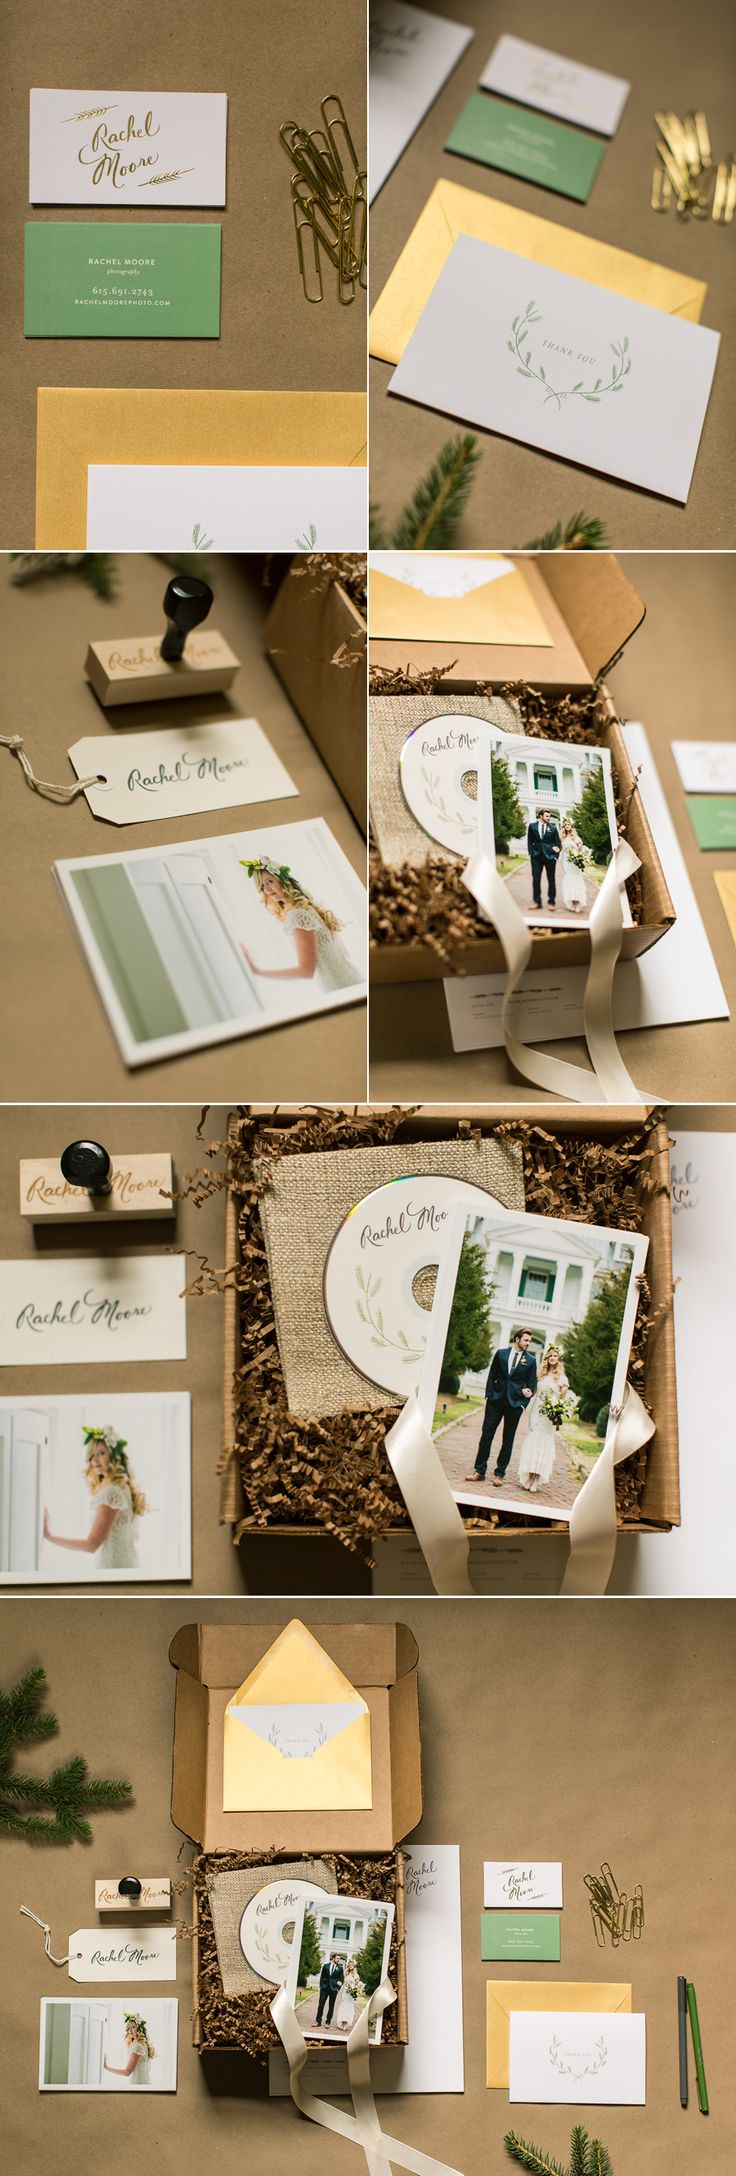 Rachel Moore Photography - new branding